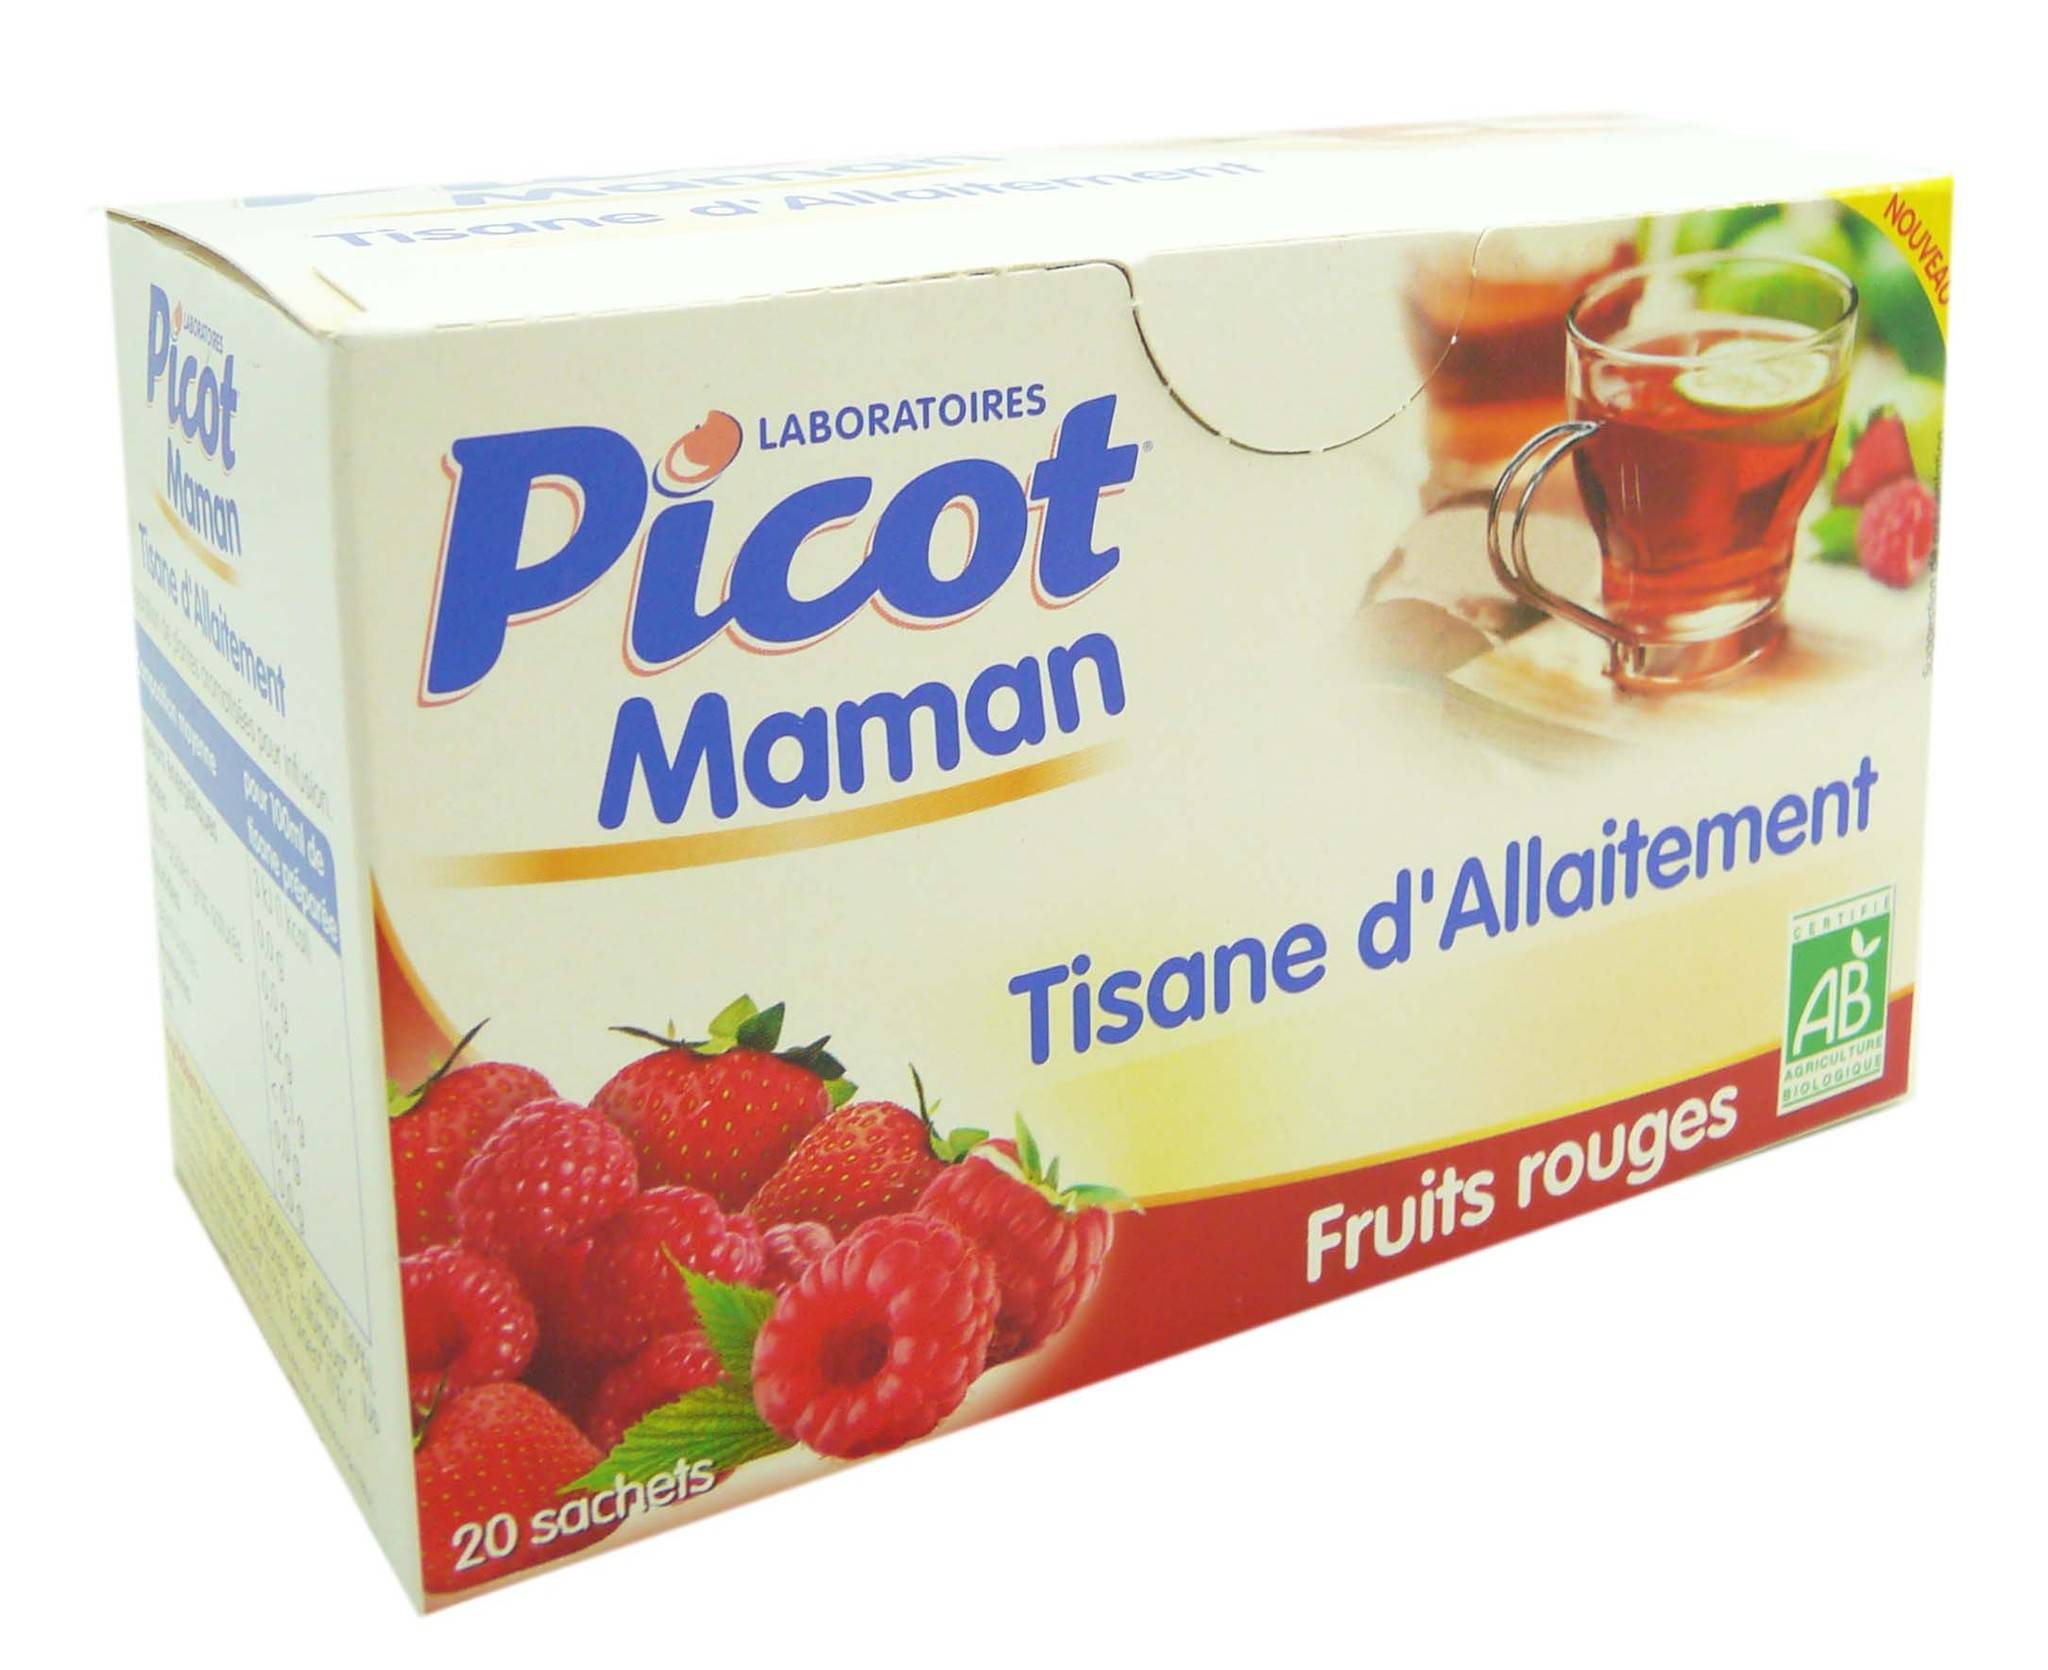 Picot maman tisane d'allaitement fruits rouges